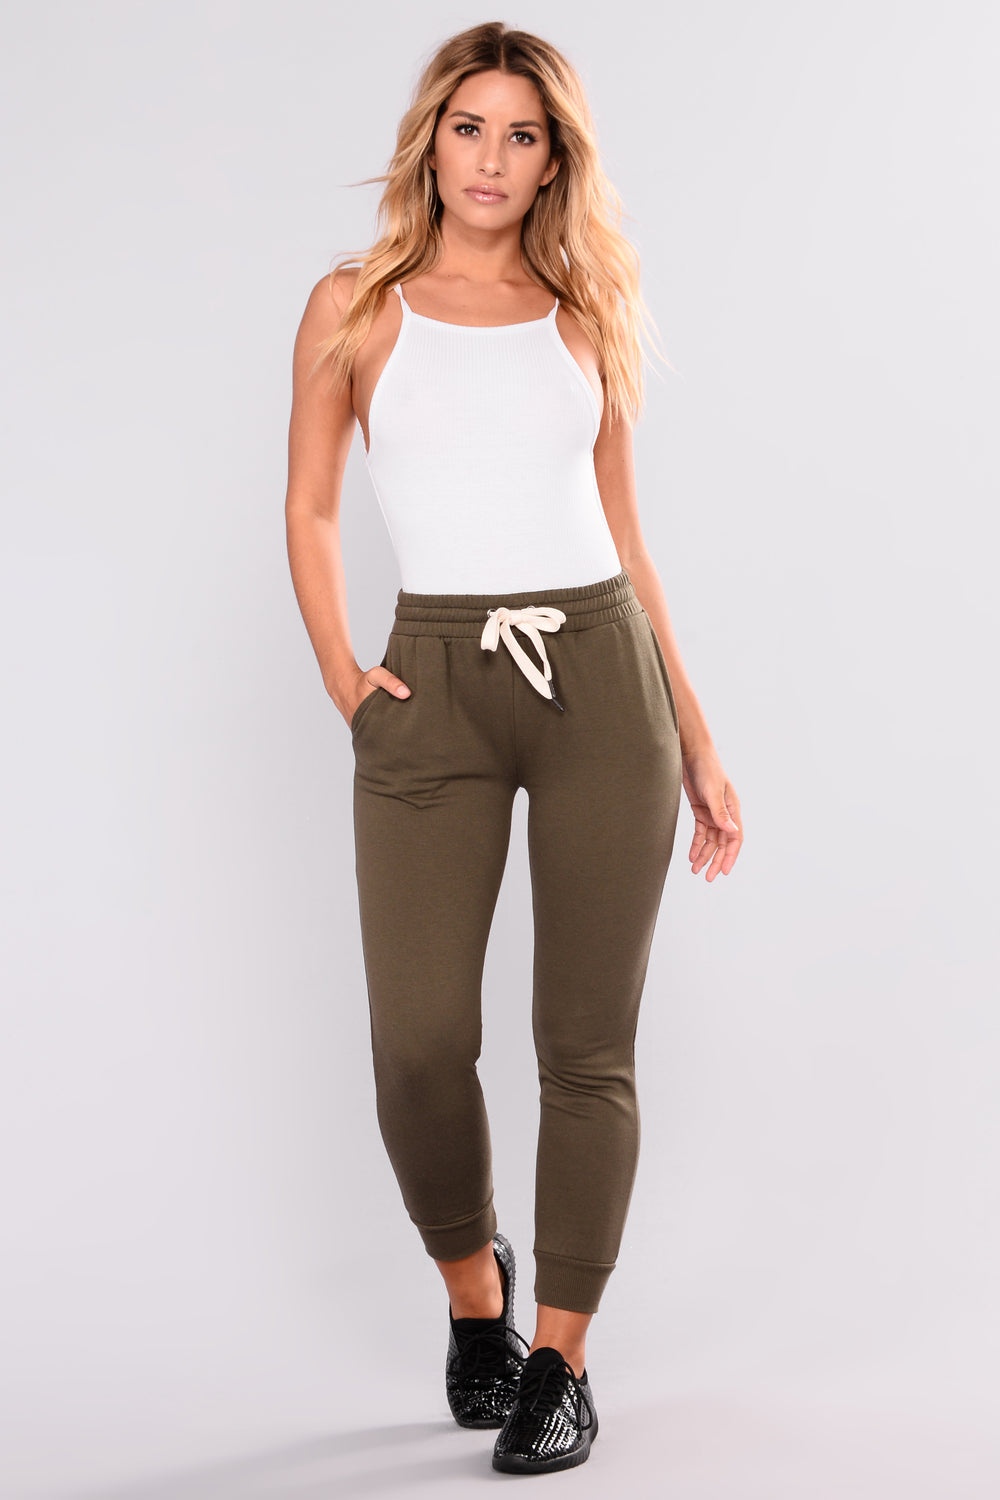 Easy As Can Be Basic Joggers - Olive